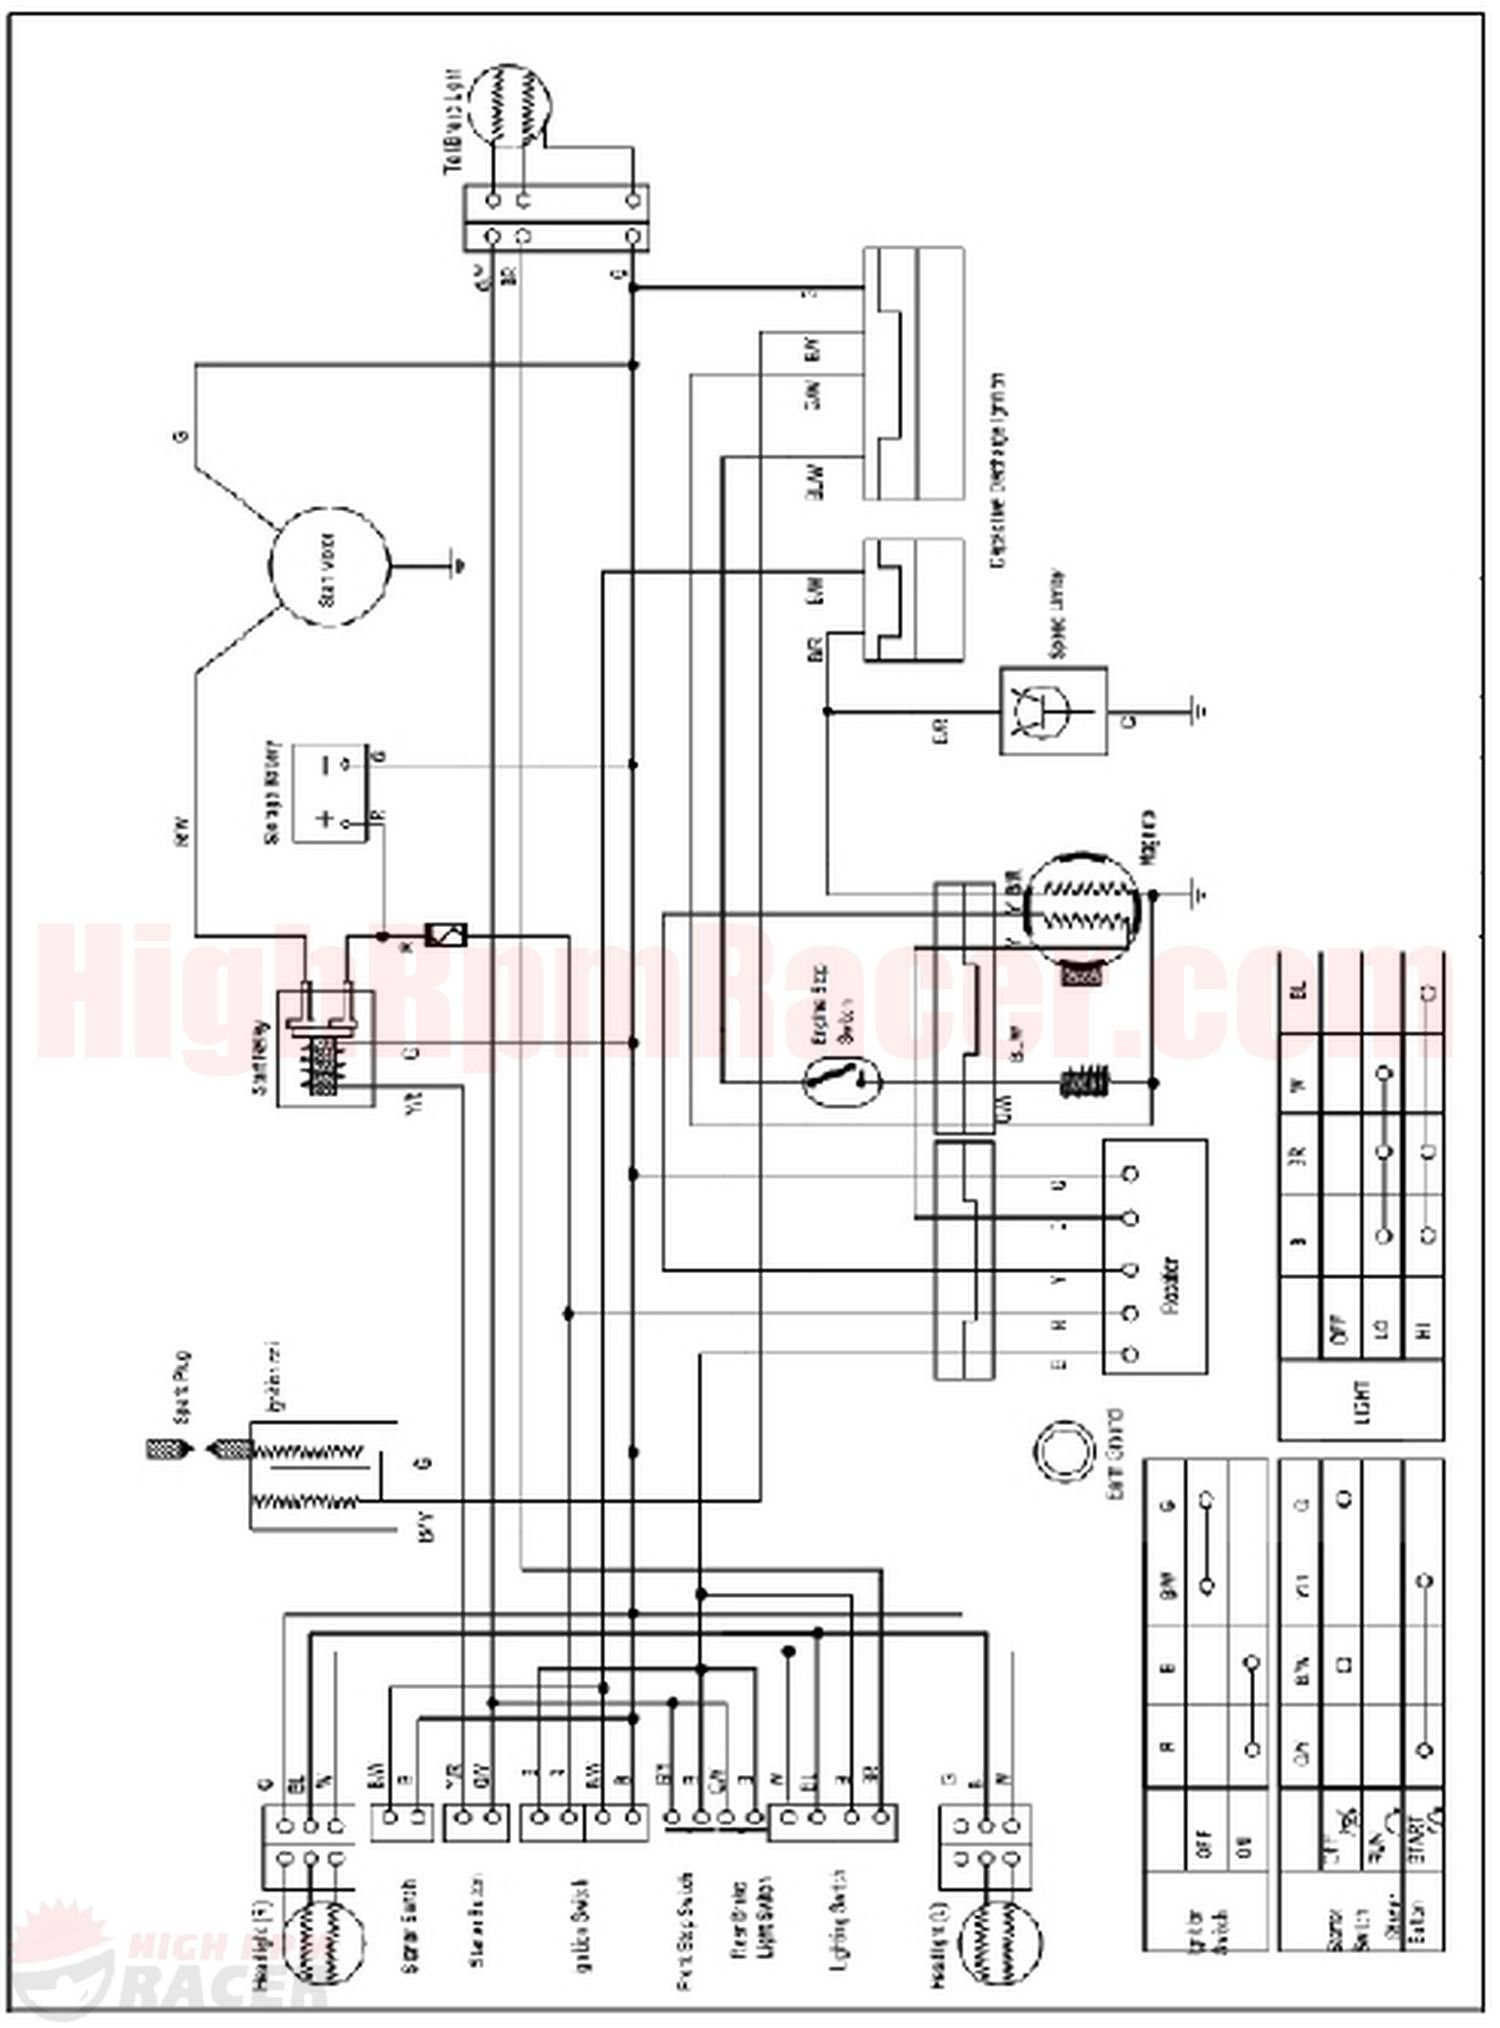 sunl250_wd sunl atv 250 wiring diagram $0 00 baja 50 atv wiring diagram at bayanpartner.co